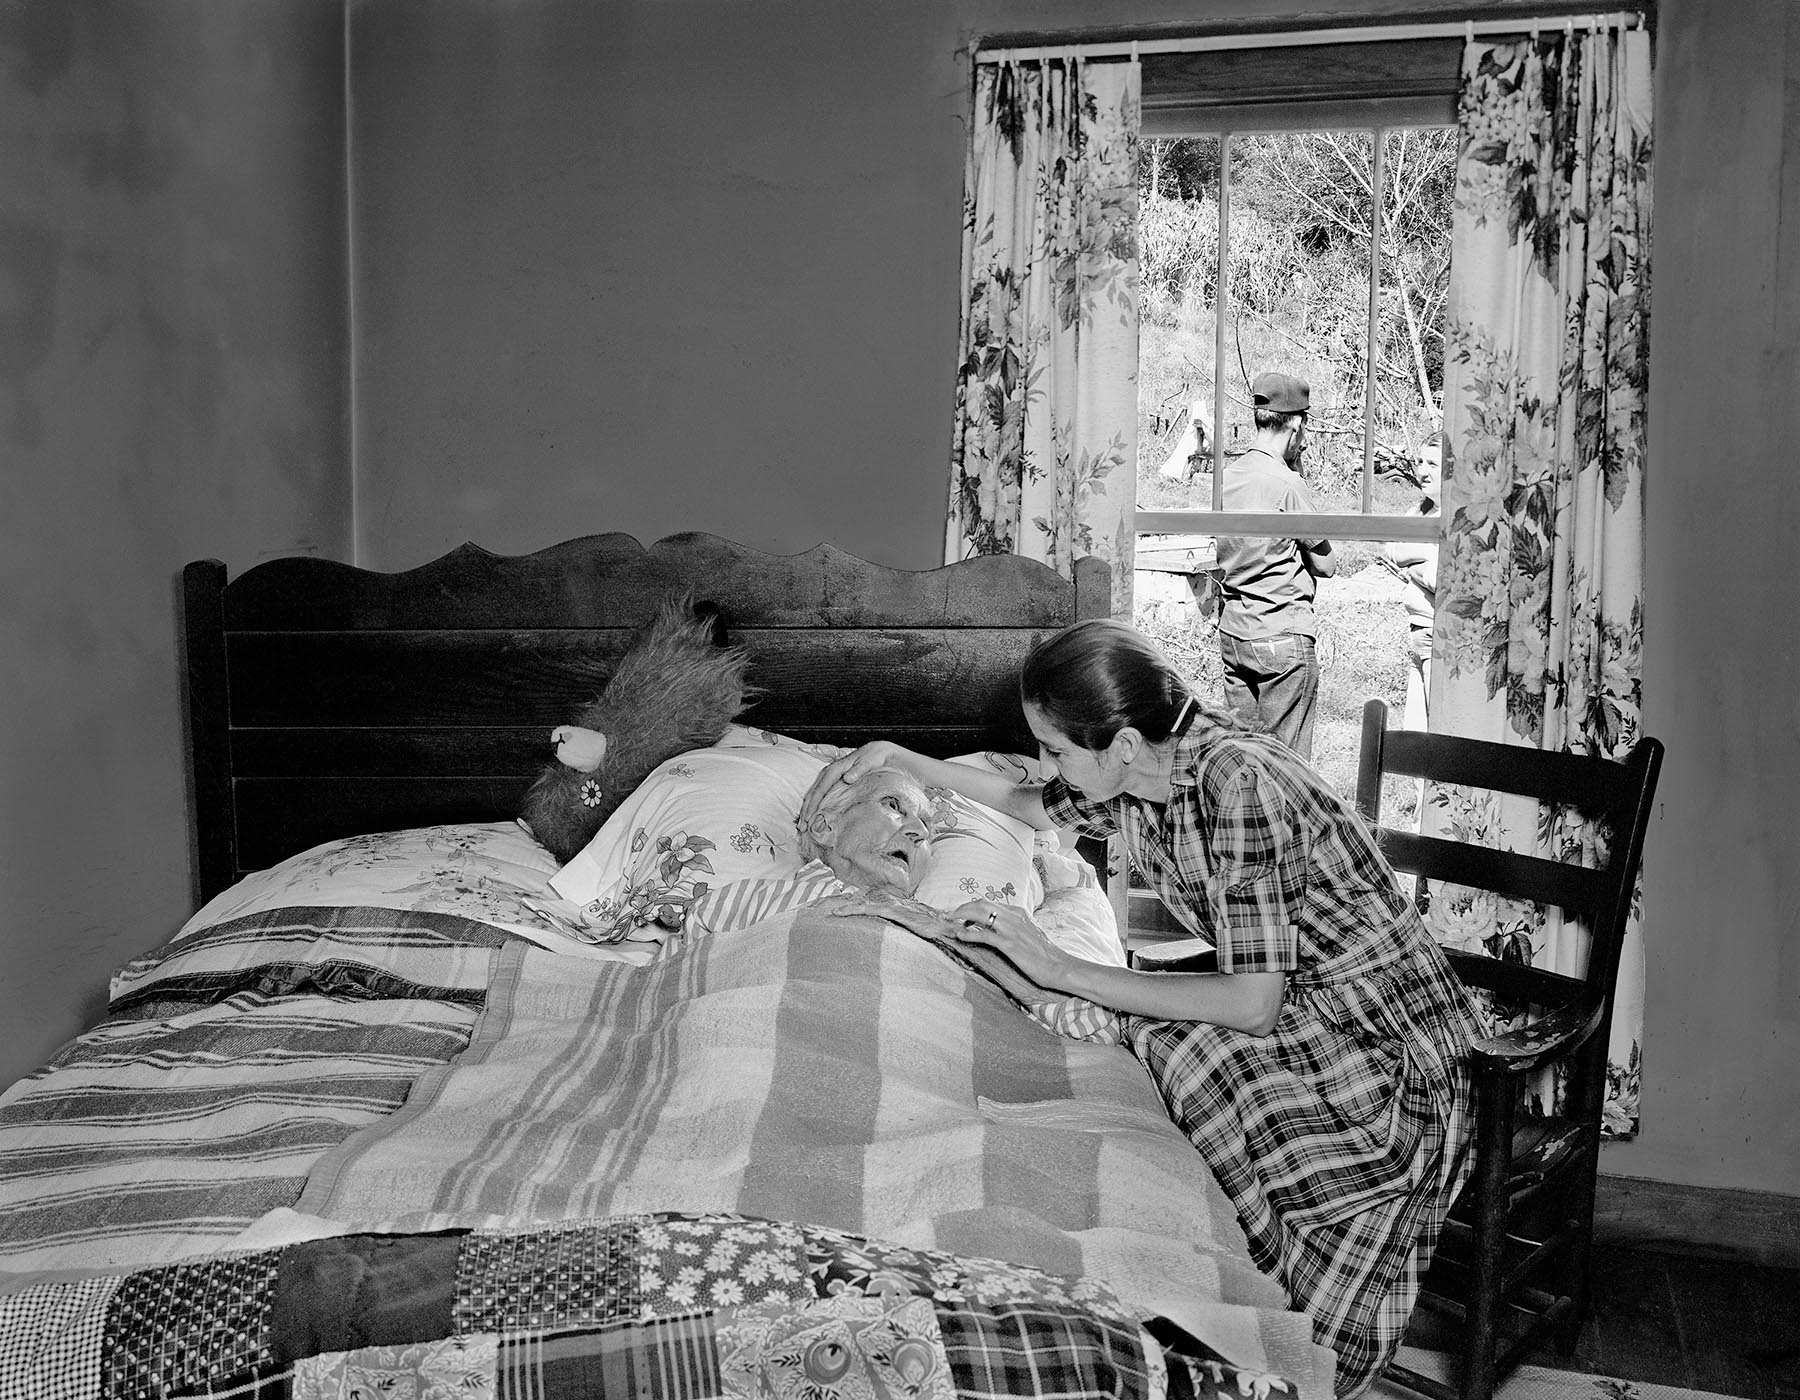 Peggy Harmon Alice bed Appalachian portrait Tim Barnwell photographer